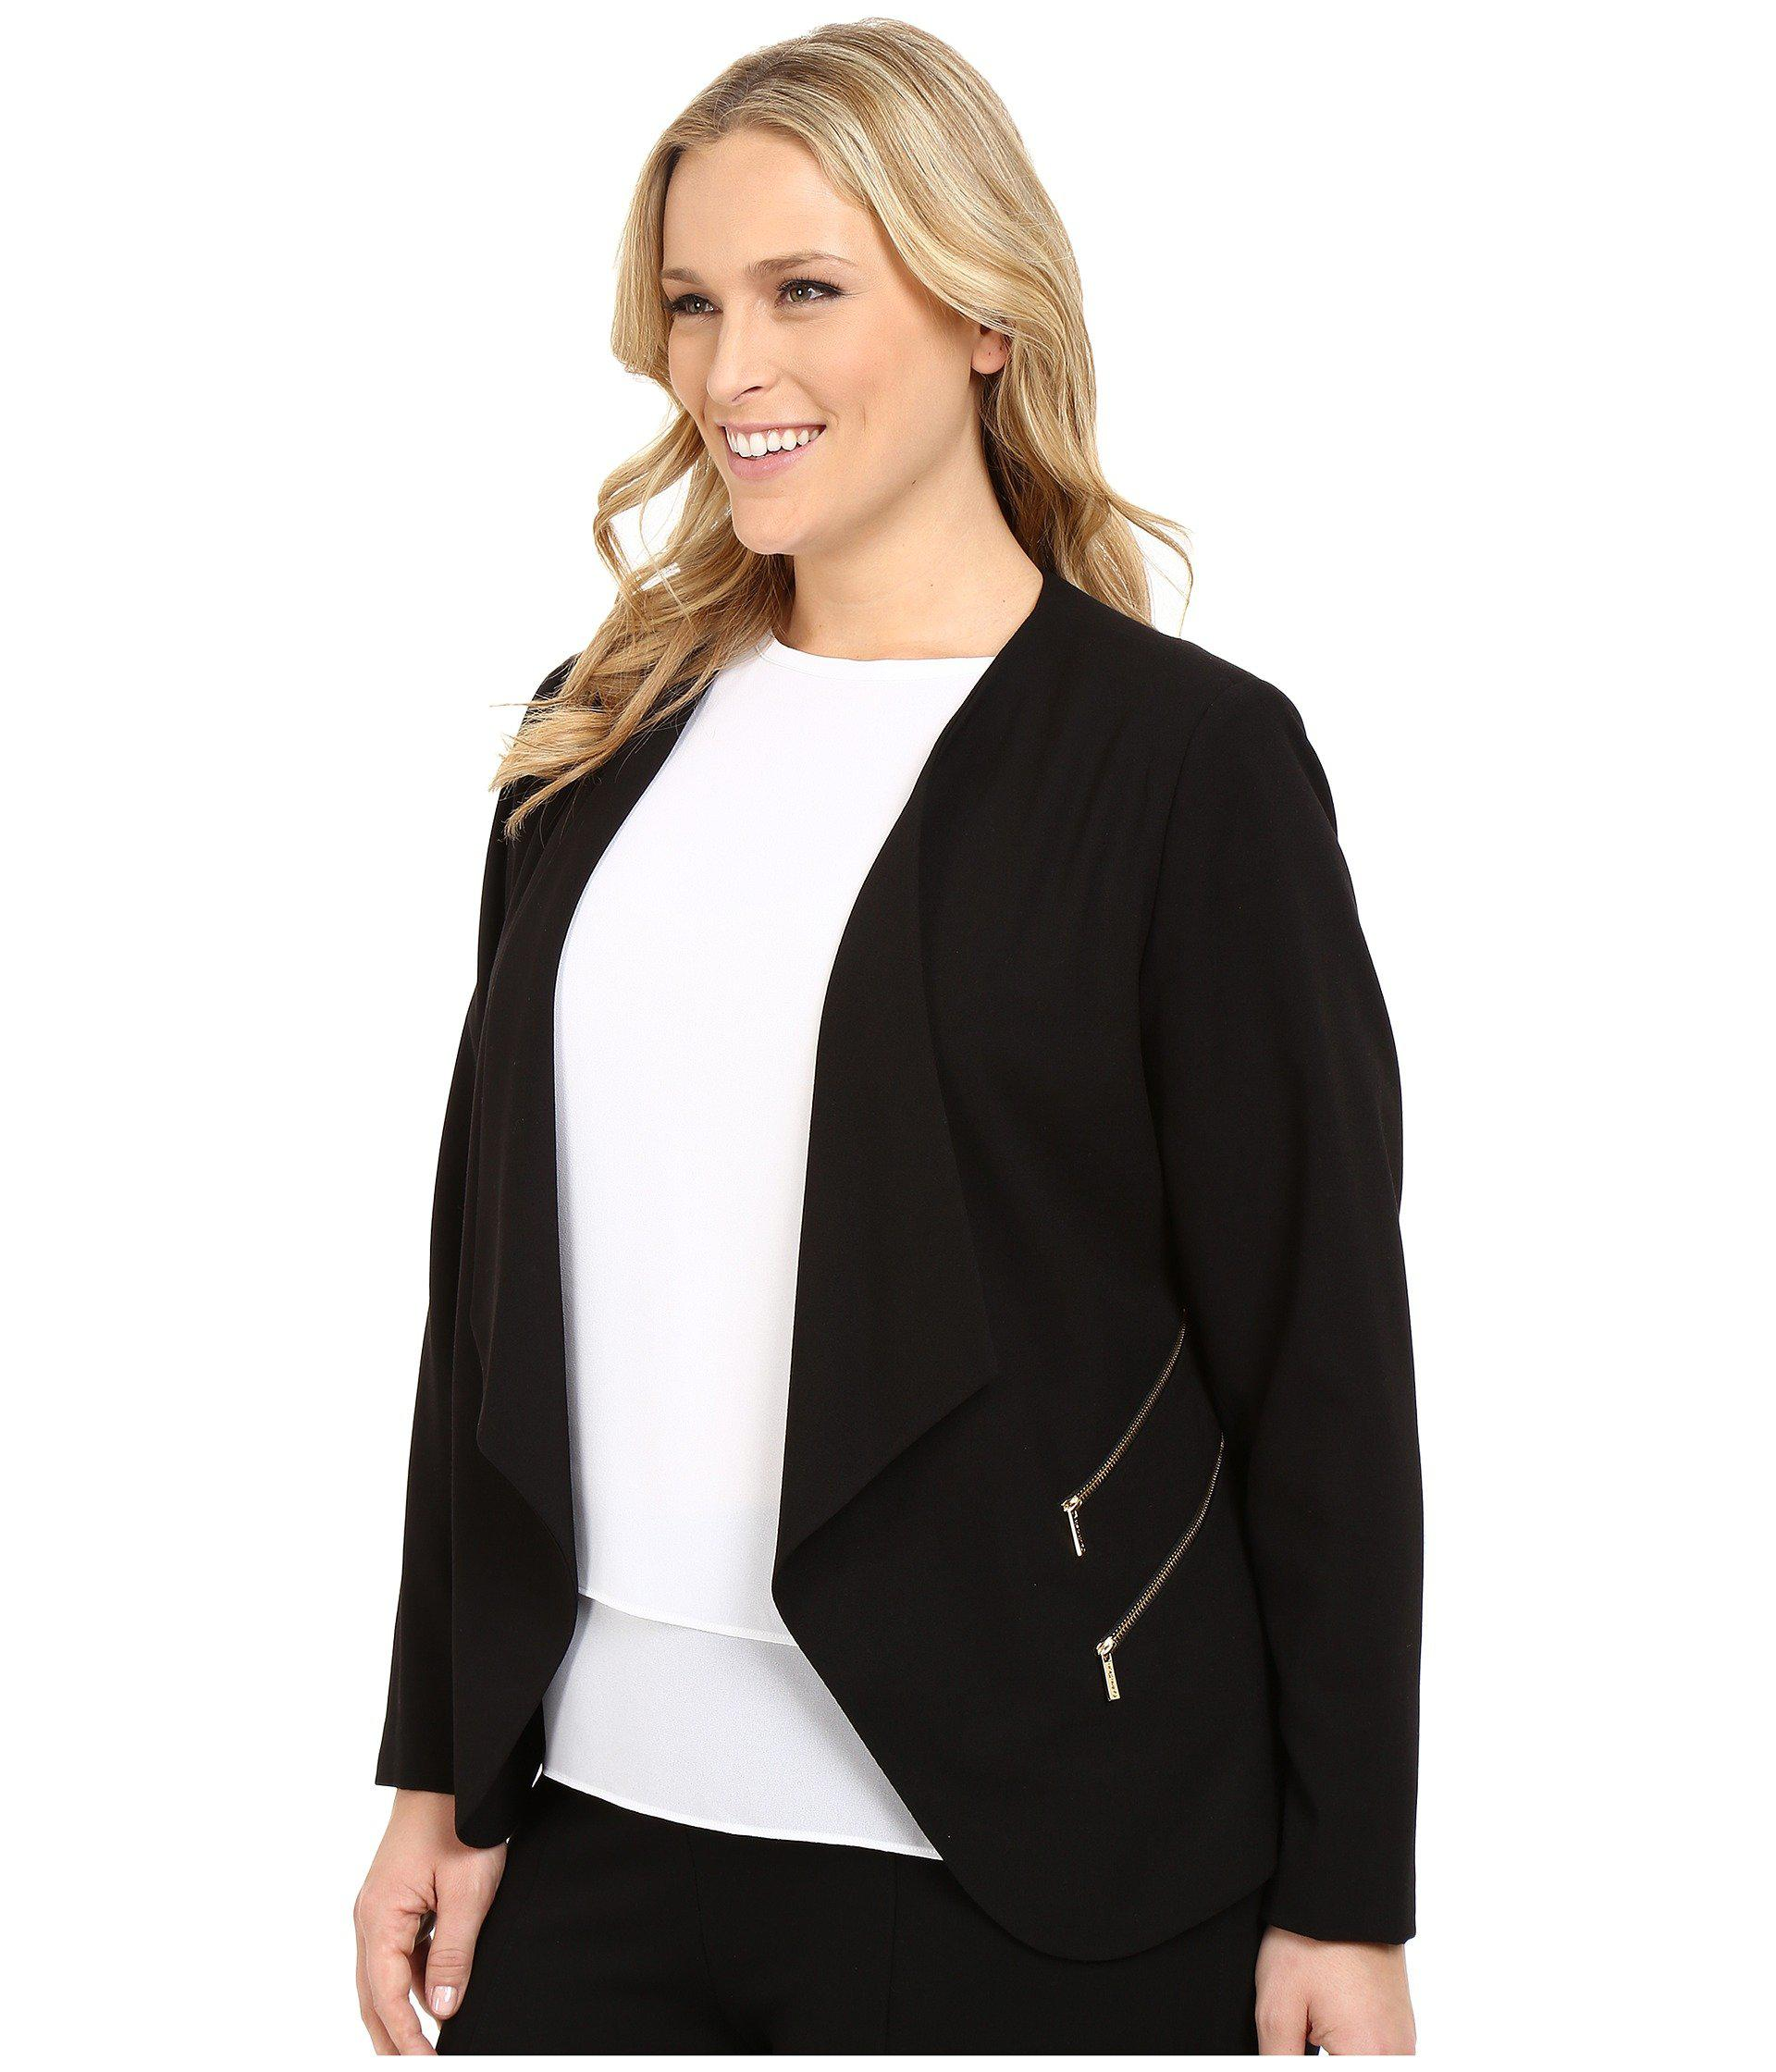 99ecc891e6b Lyst - Calvin Klein Plus Size 2 Zipper Jacket W  Fly Away in Black - Save  20%